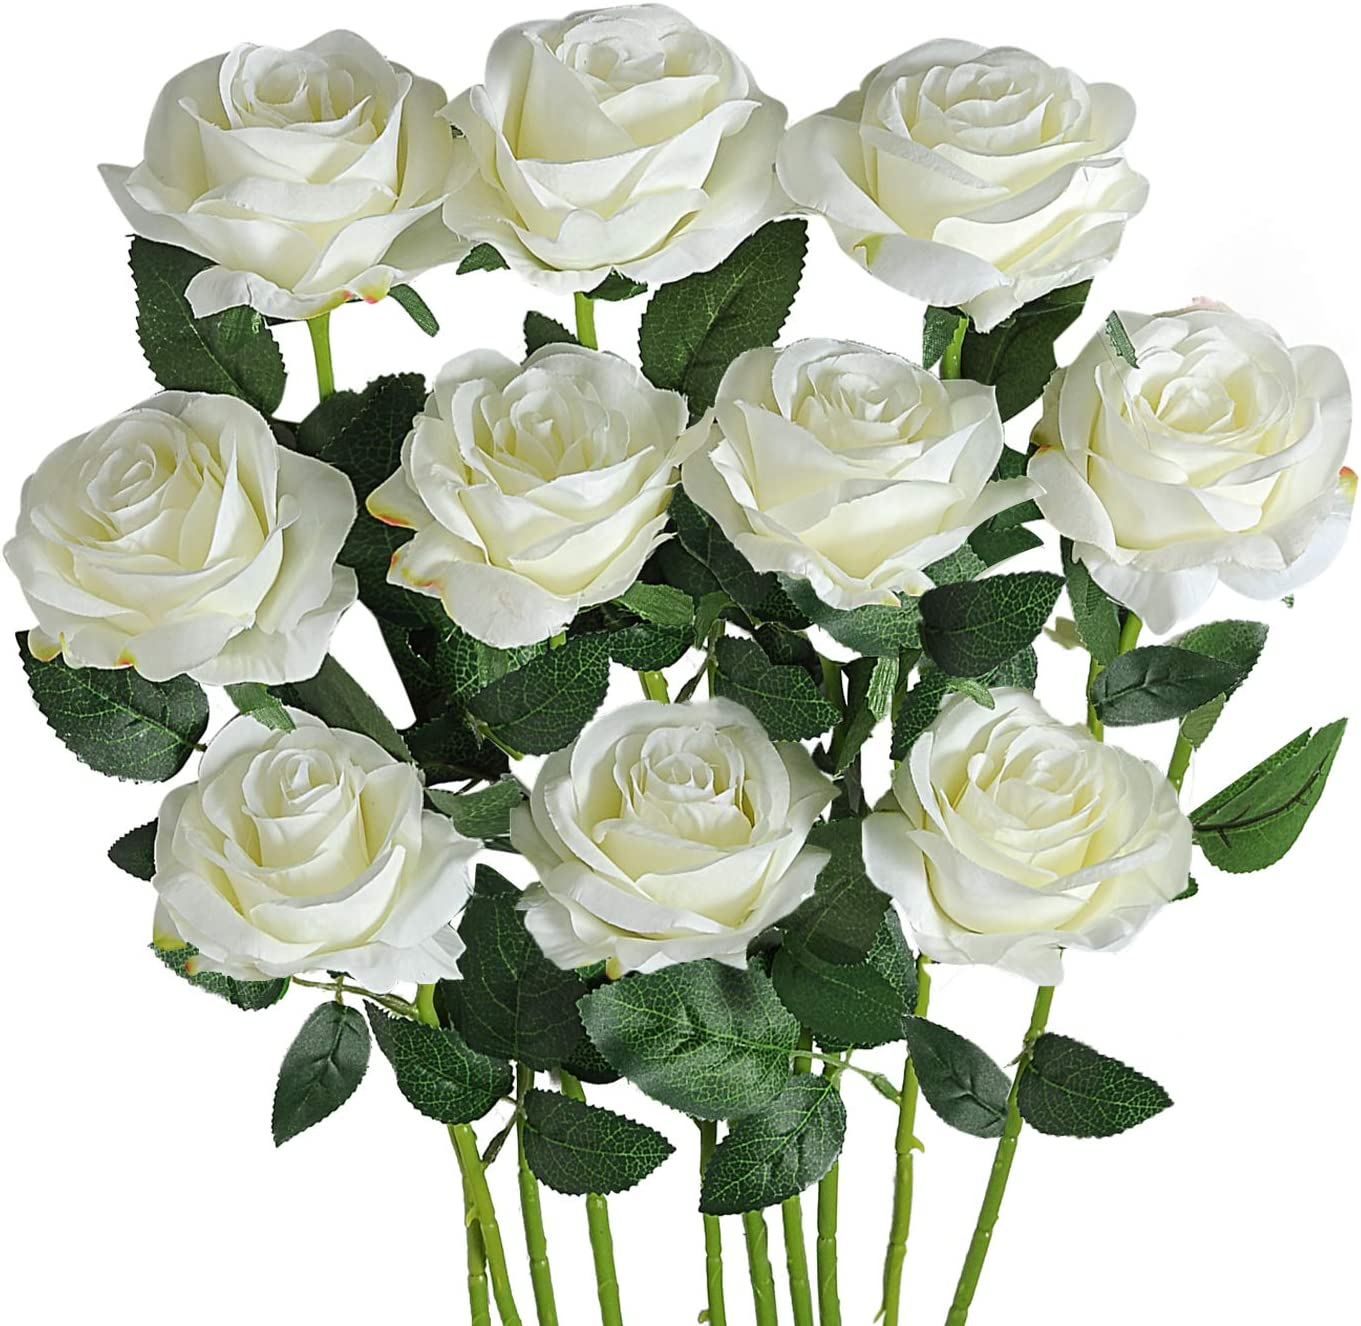 Amazon Com Fllojoya Artificial Roses For Decorations White Artificial Flowers Roses Long Stem Artificial Fake Rose For Wedding Party Home Decor Off White Silk Rose Furniture Decor